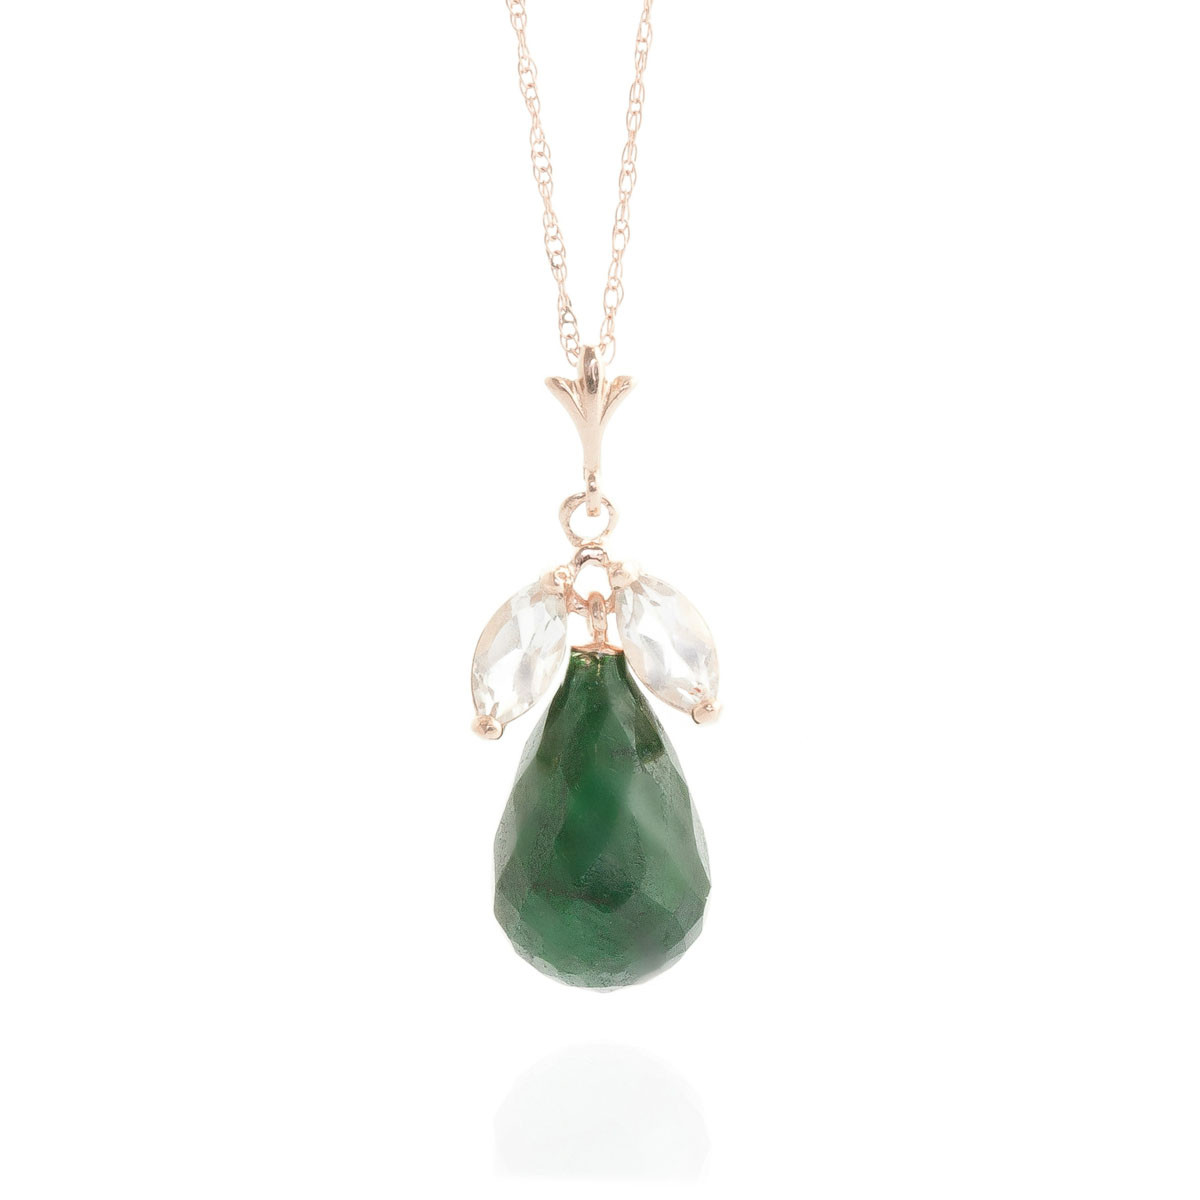 Emerald & White Topaz Snowdrop Pendant Necklace in 9ct Rose Gold